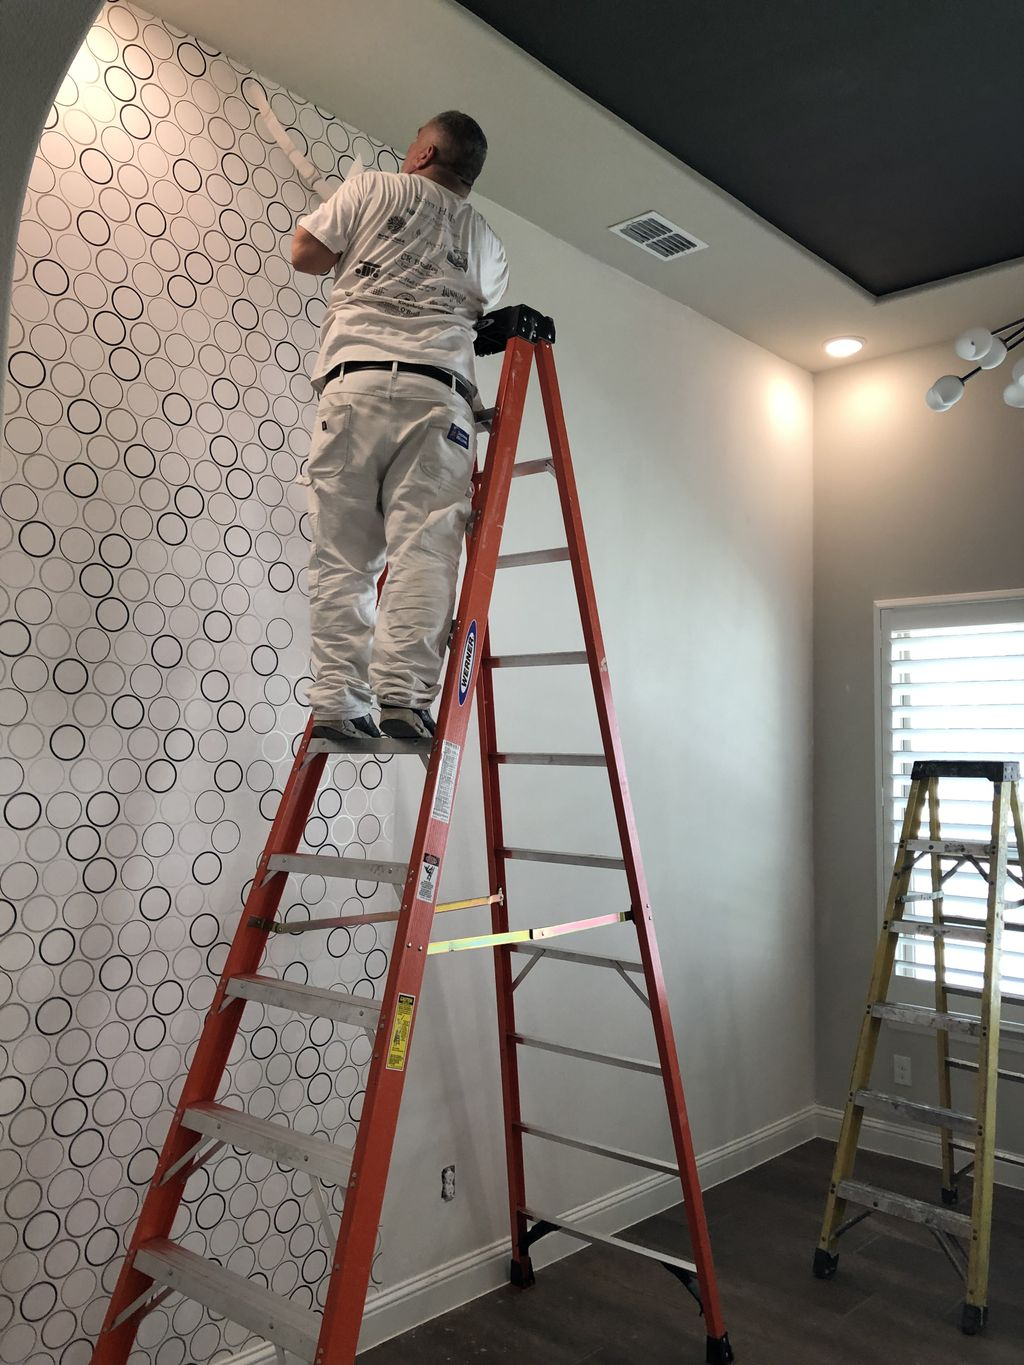 Residential pattern match Wallcovering